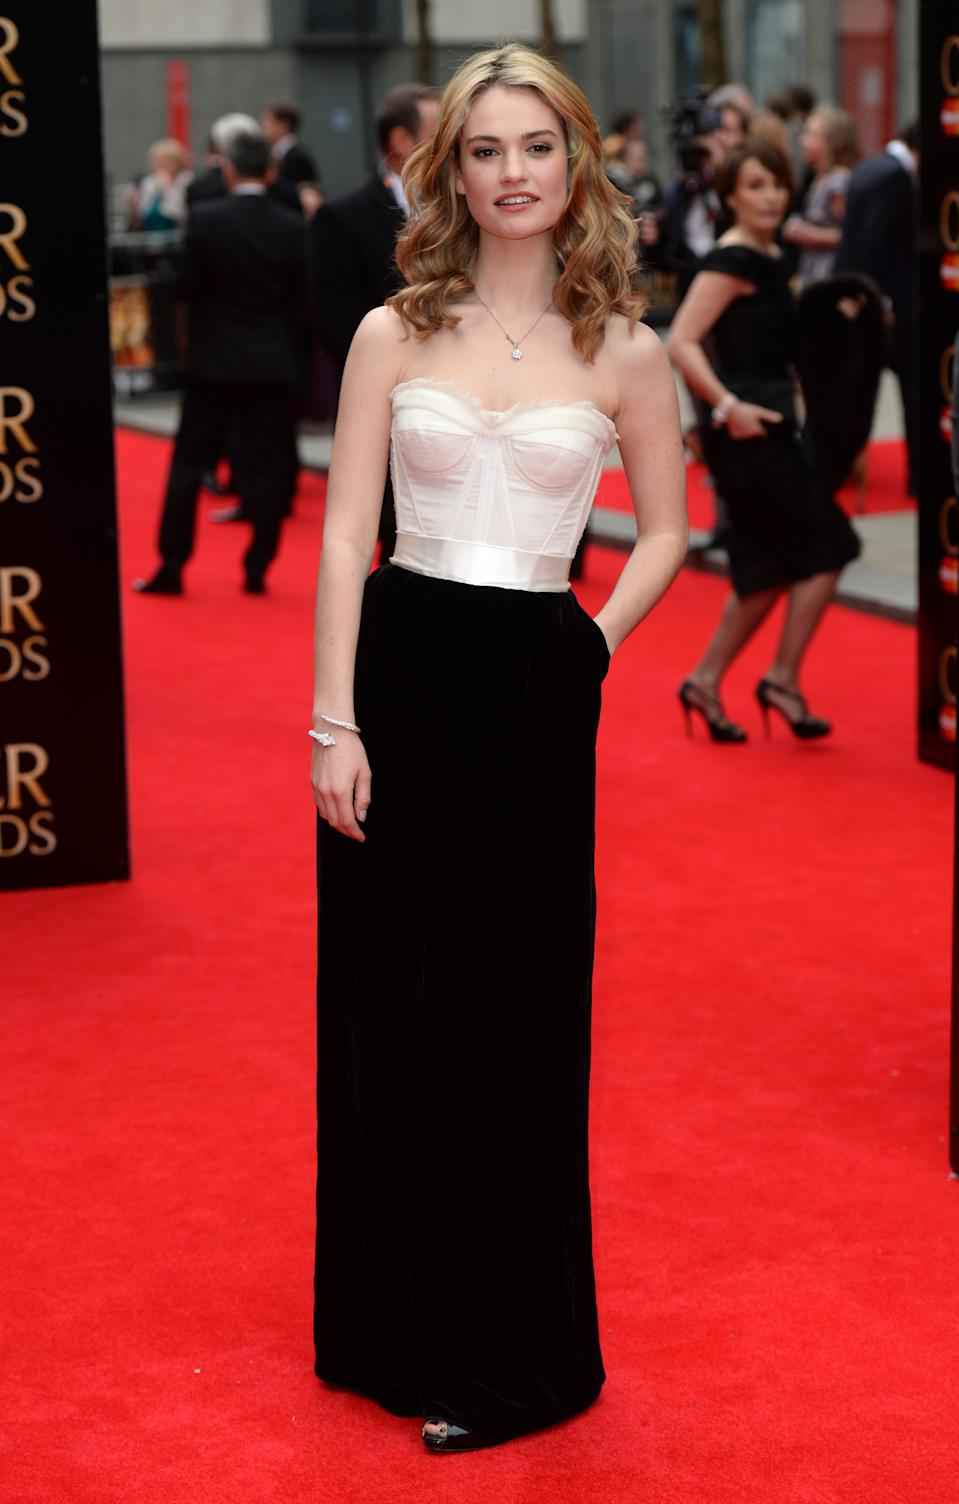 Lily James arriving at the Olivier Awards 2013, Royal Opera House, Covent Garden, London.